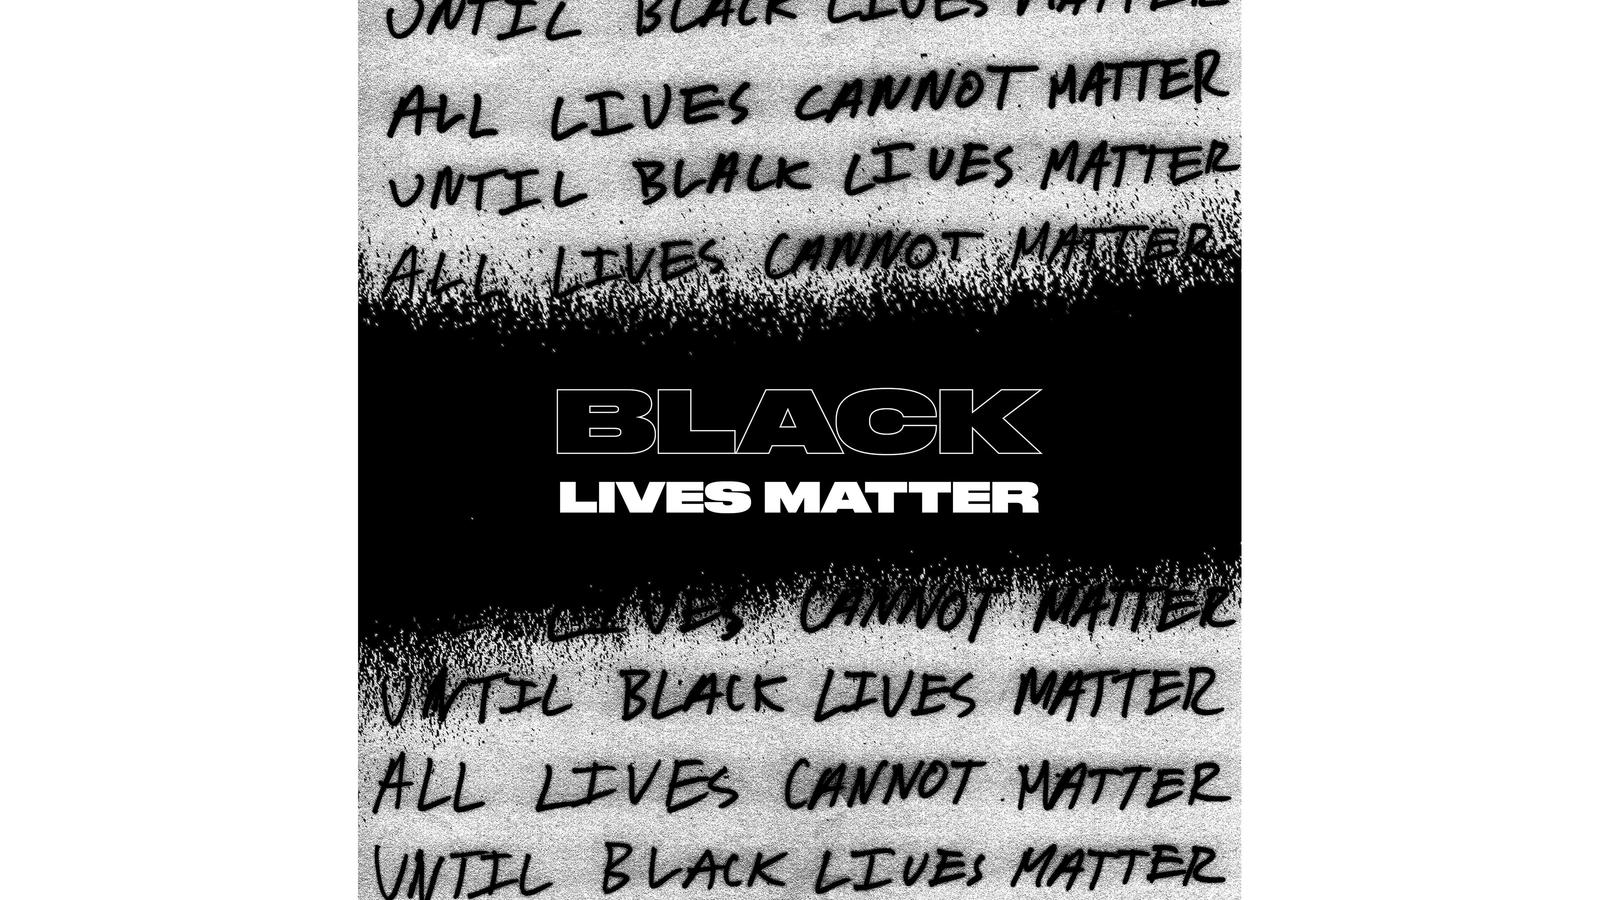 converse-statement-on-commitment-to-black-community